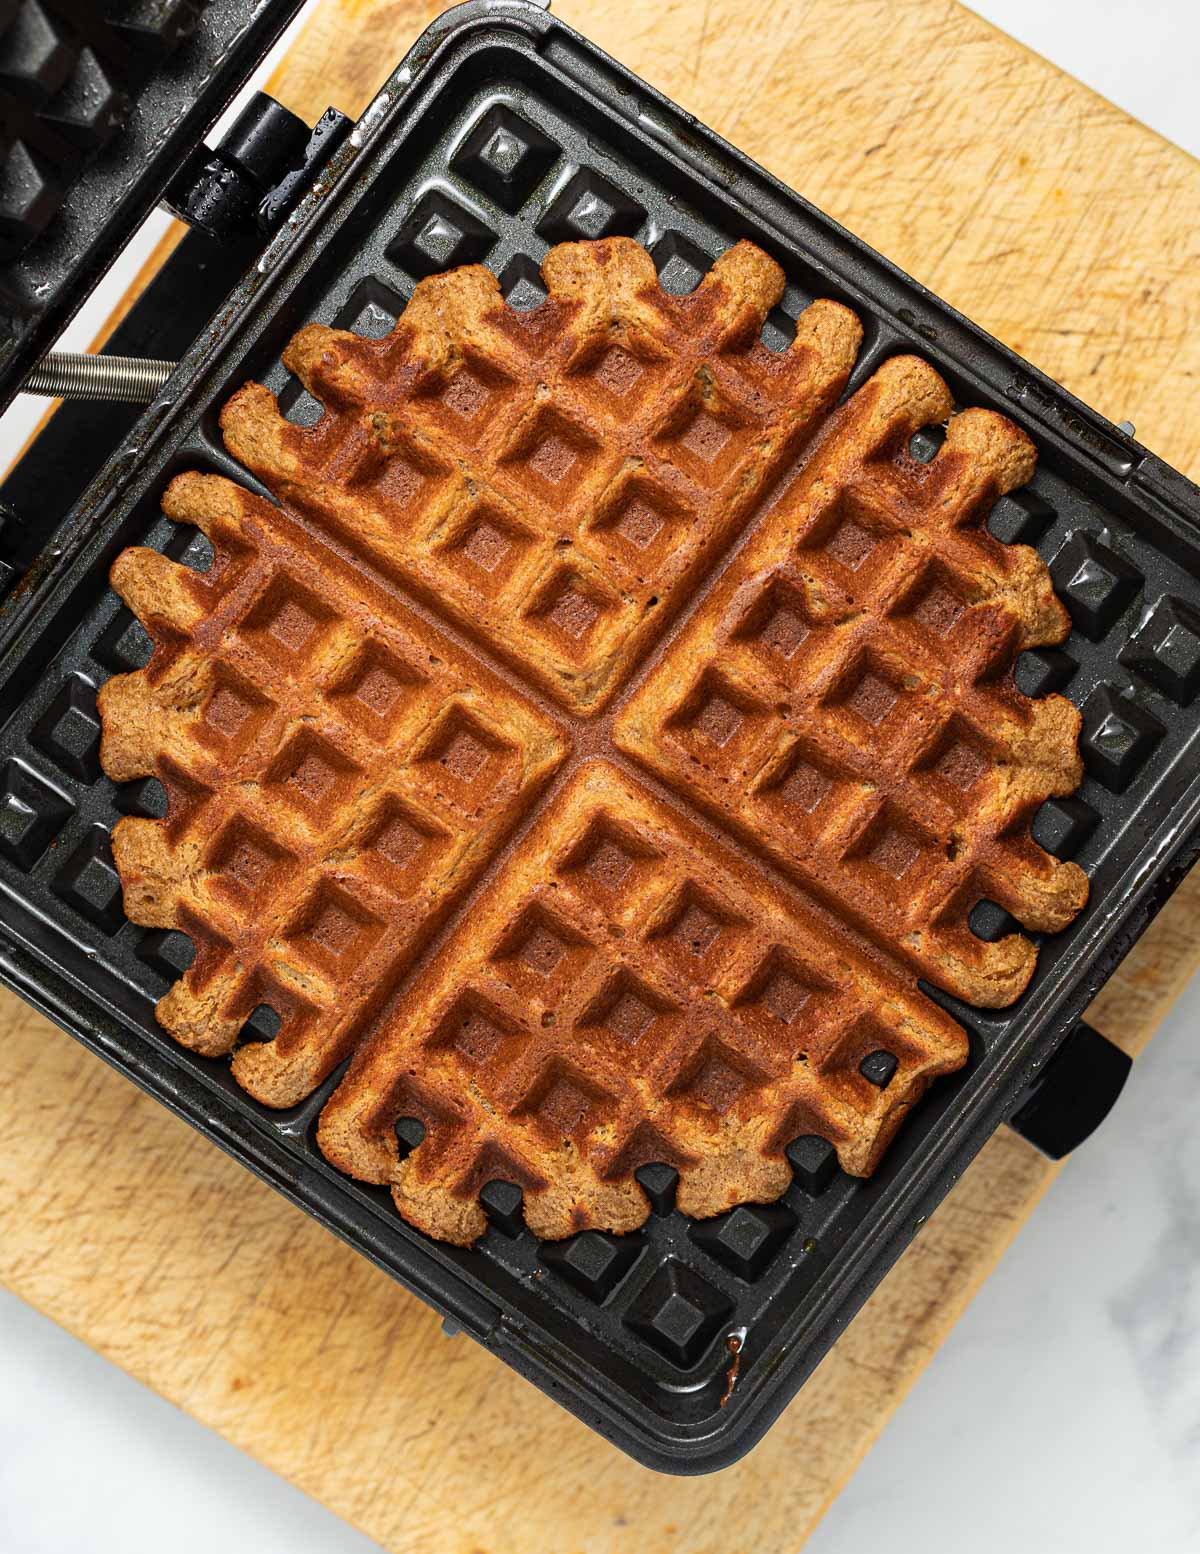 cooked waffles in a waffle iron